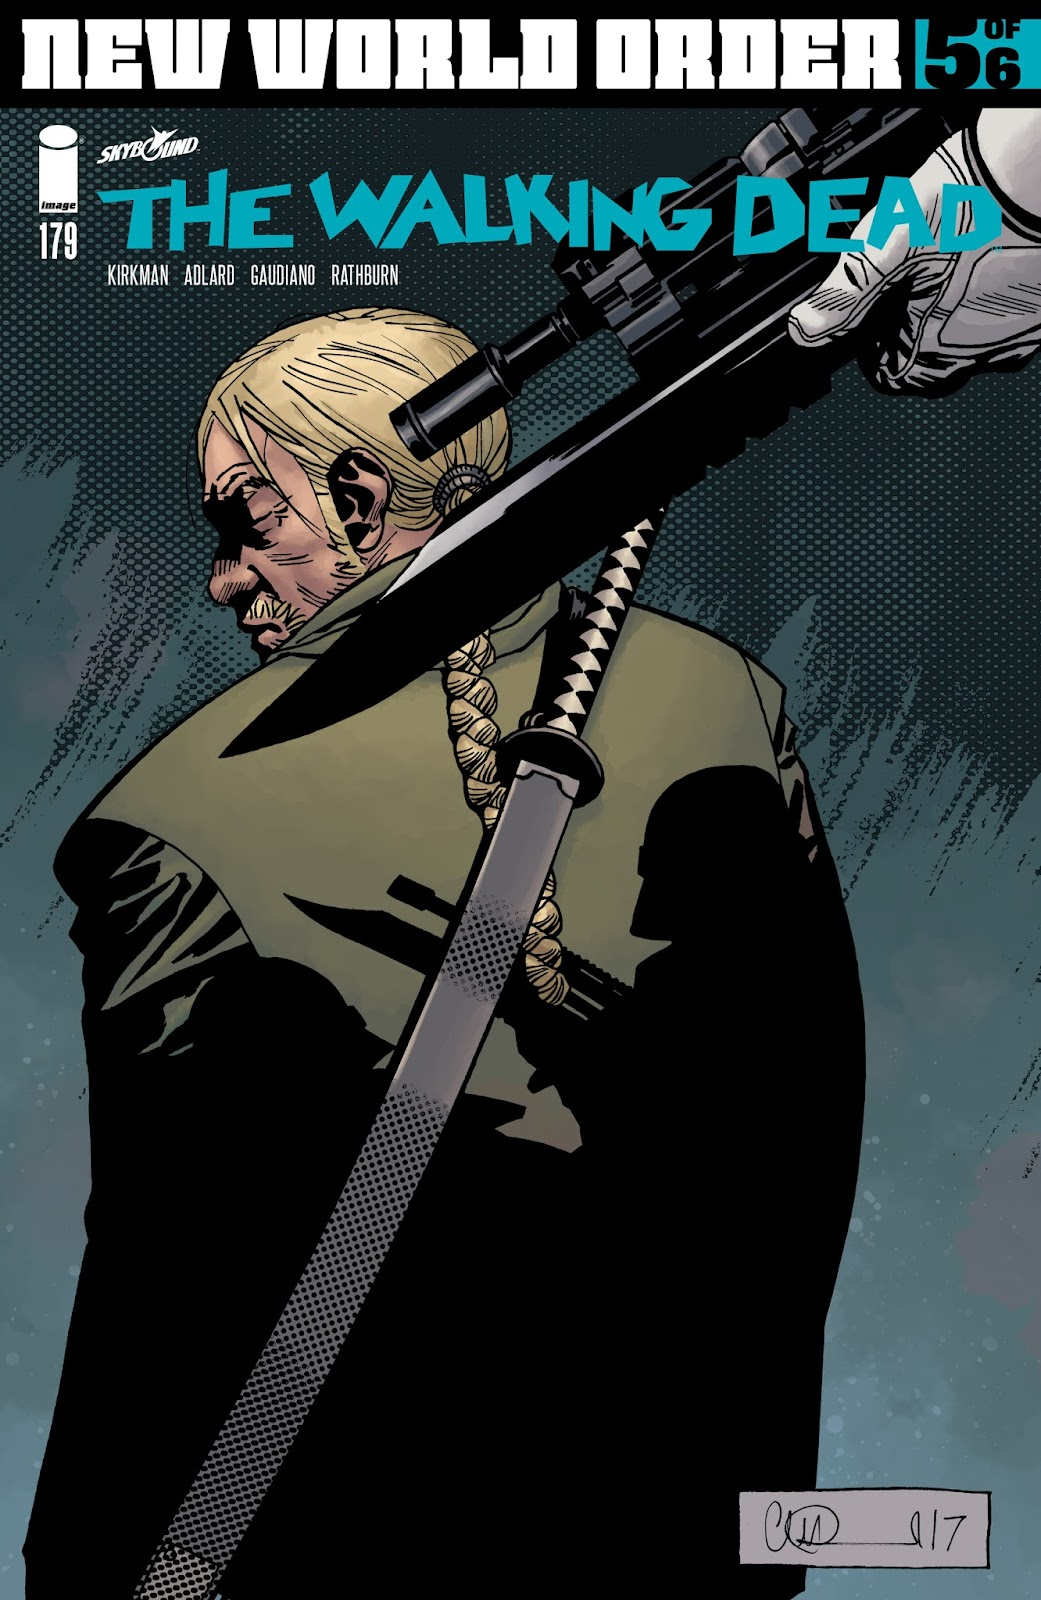 The Walking Dead Issue #179 Page 1